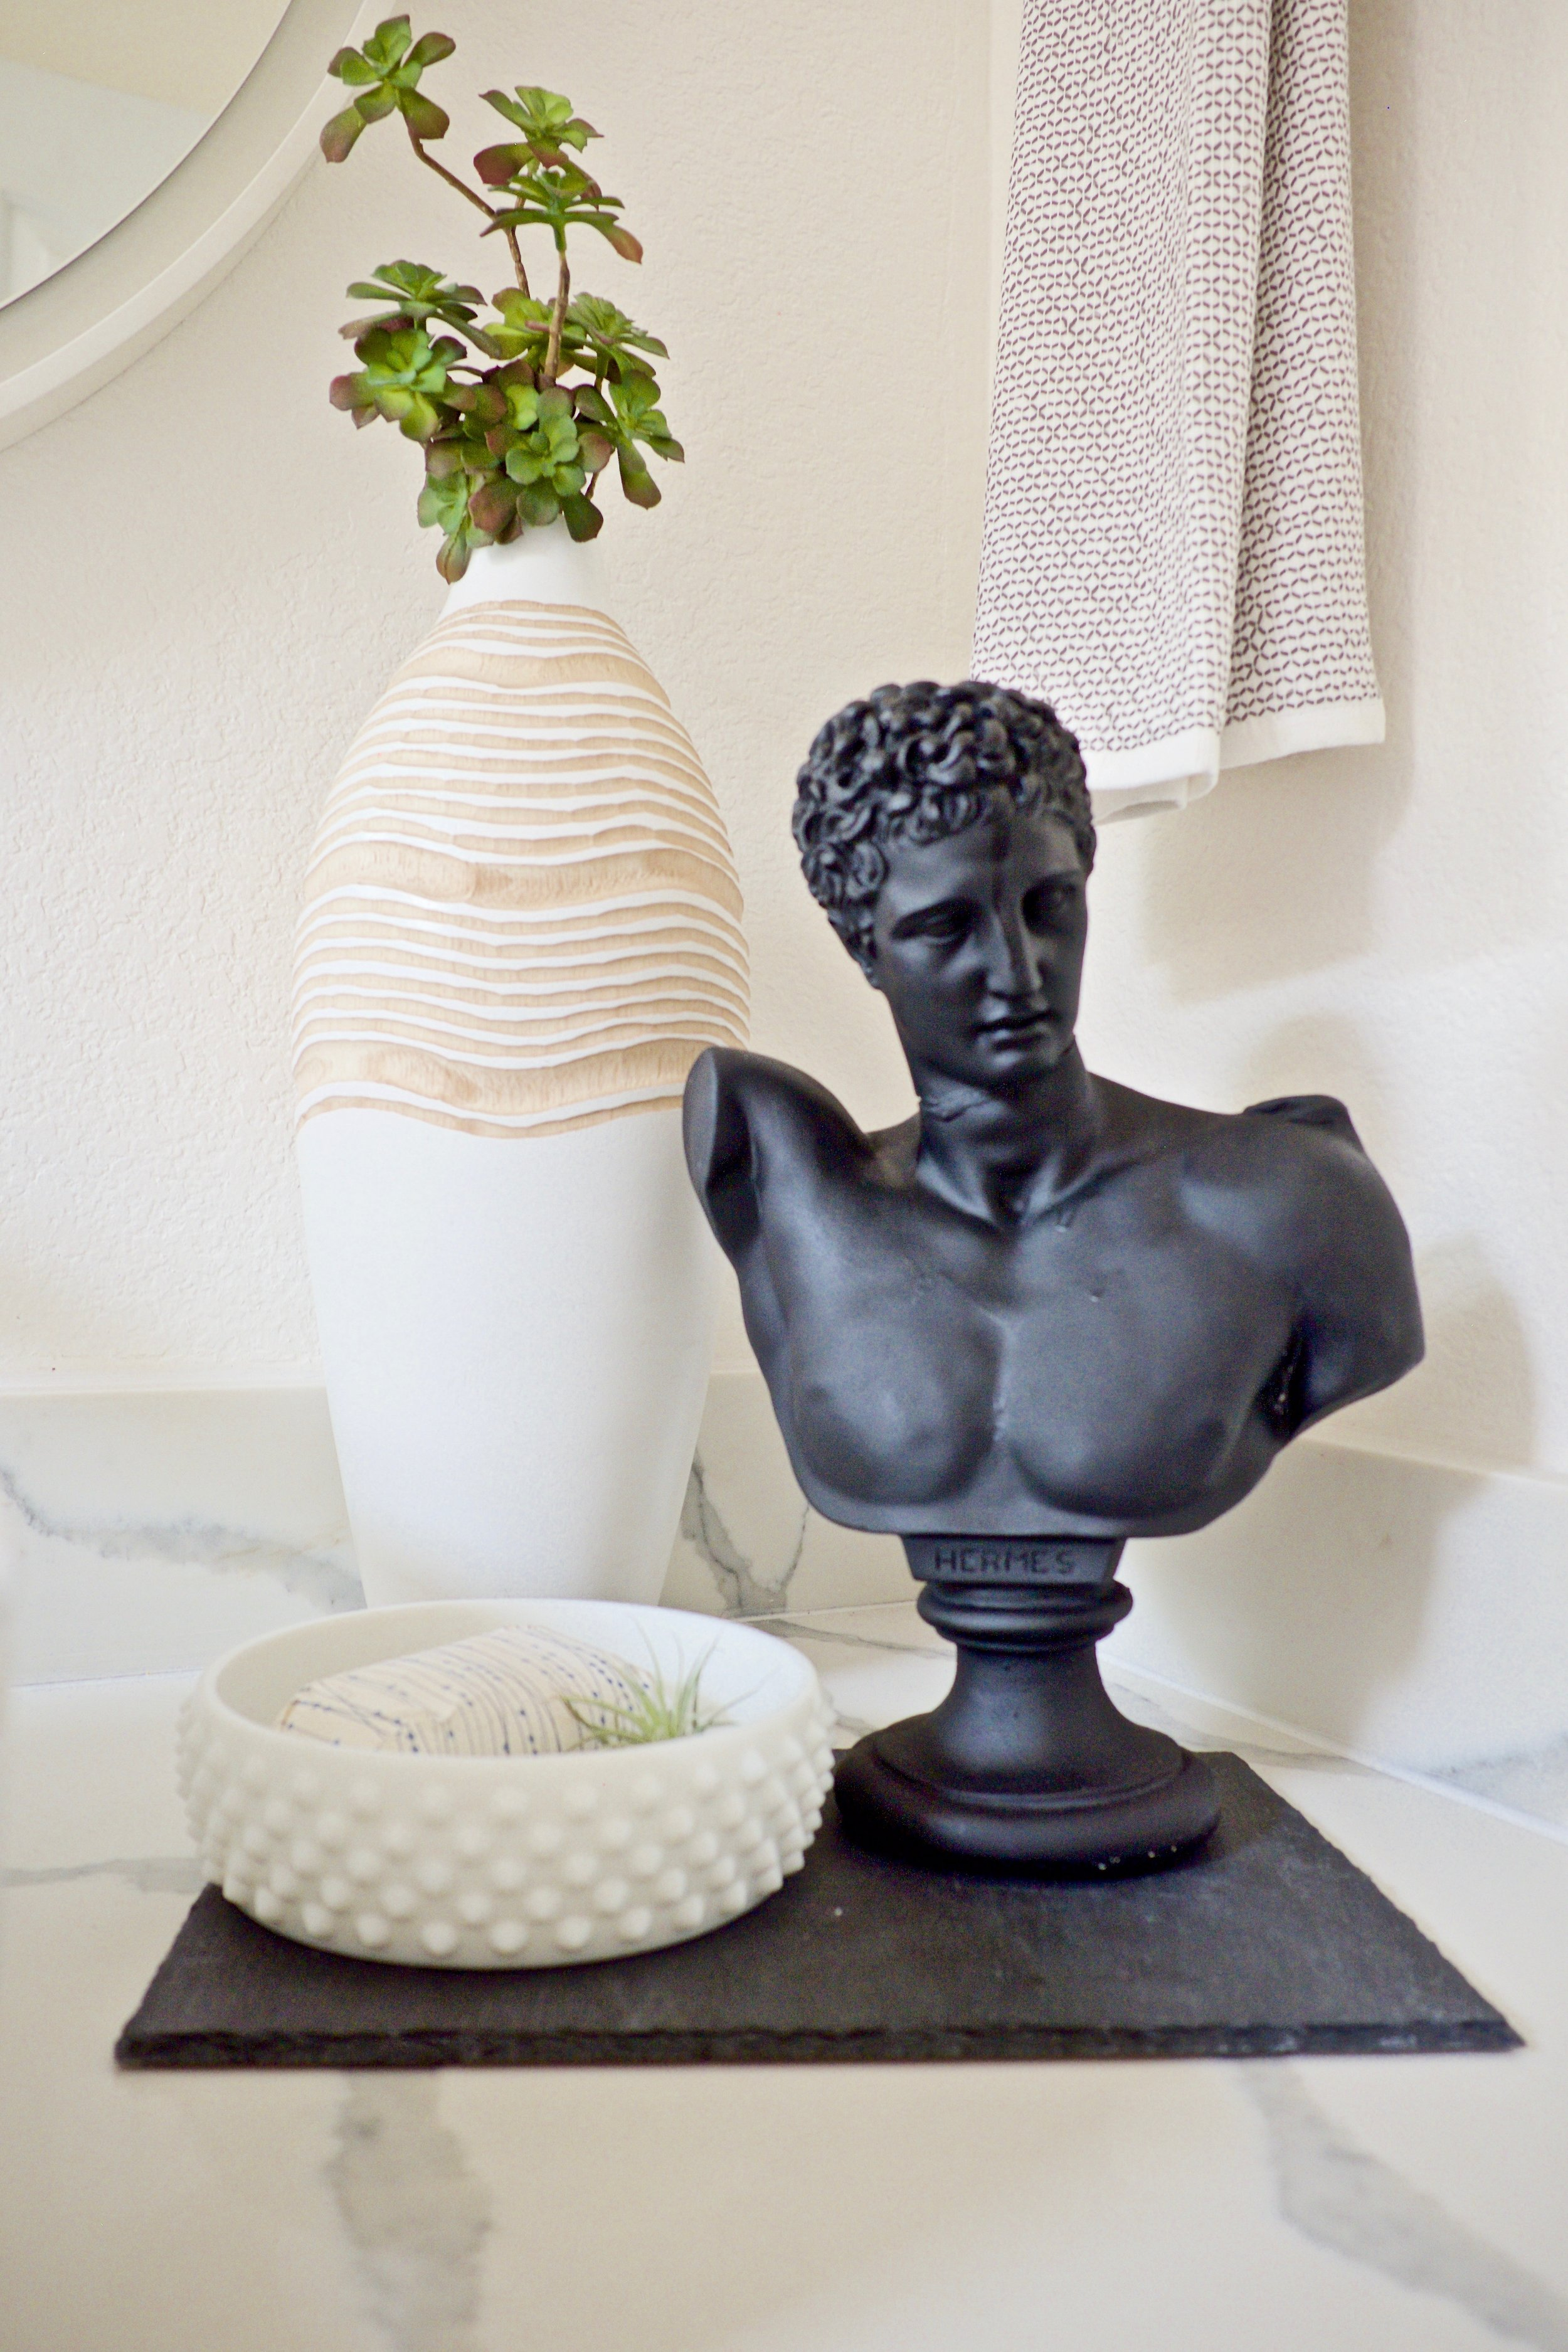 Bust and cheese tray make a great bathroom